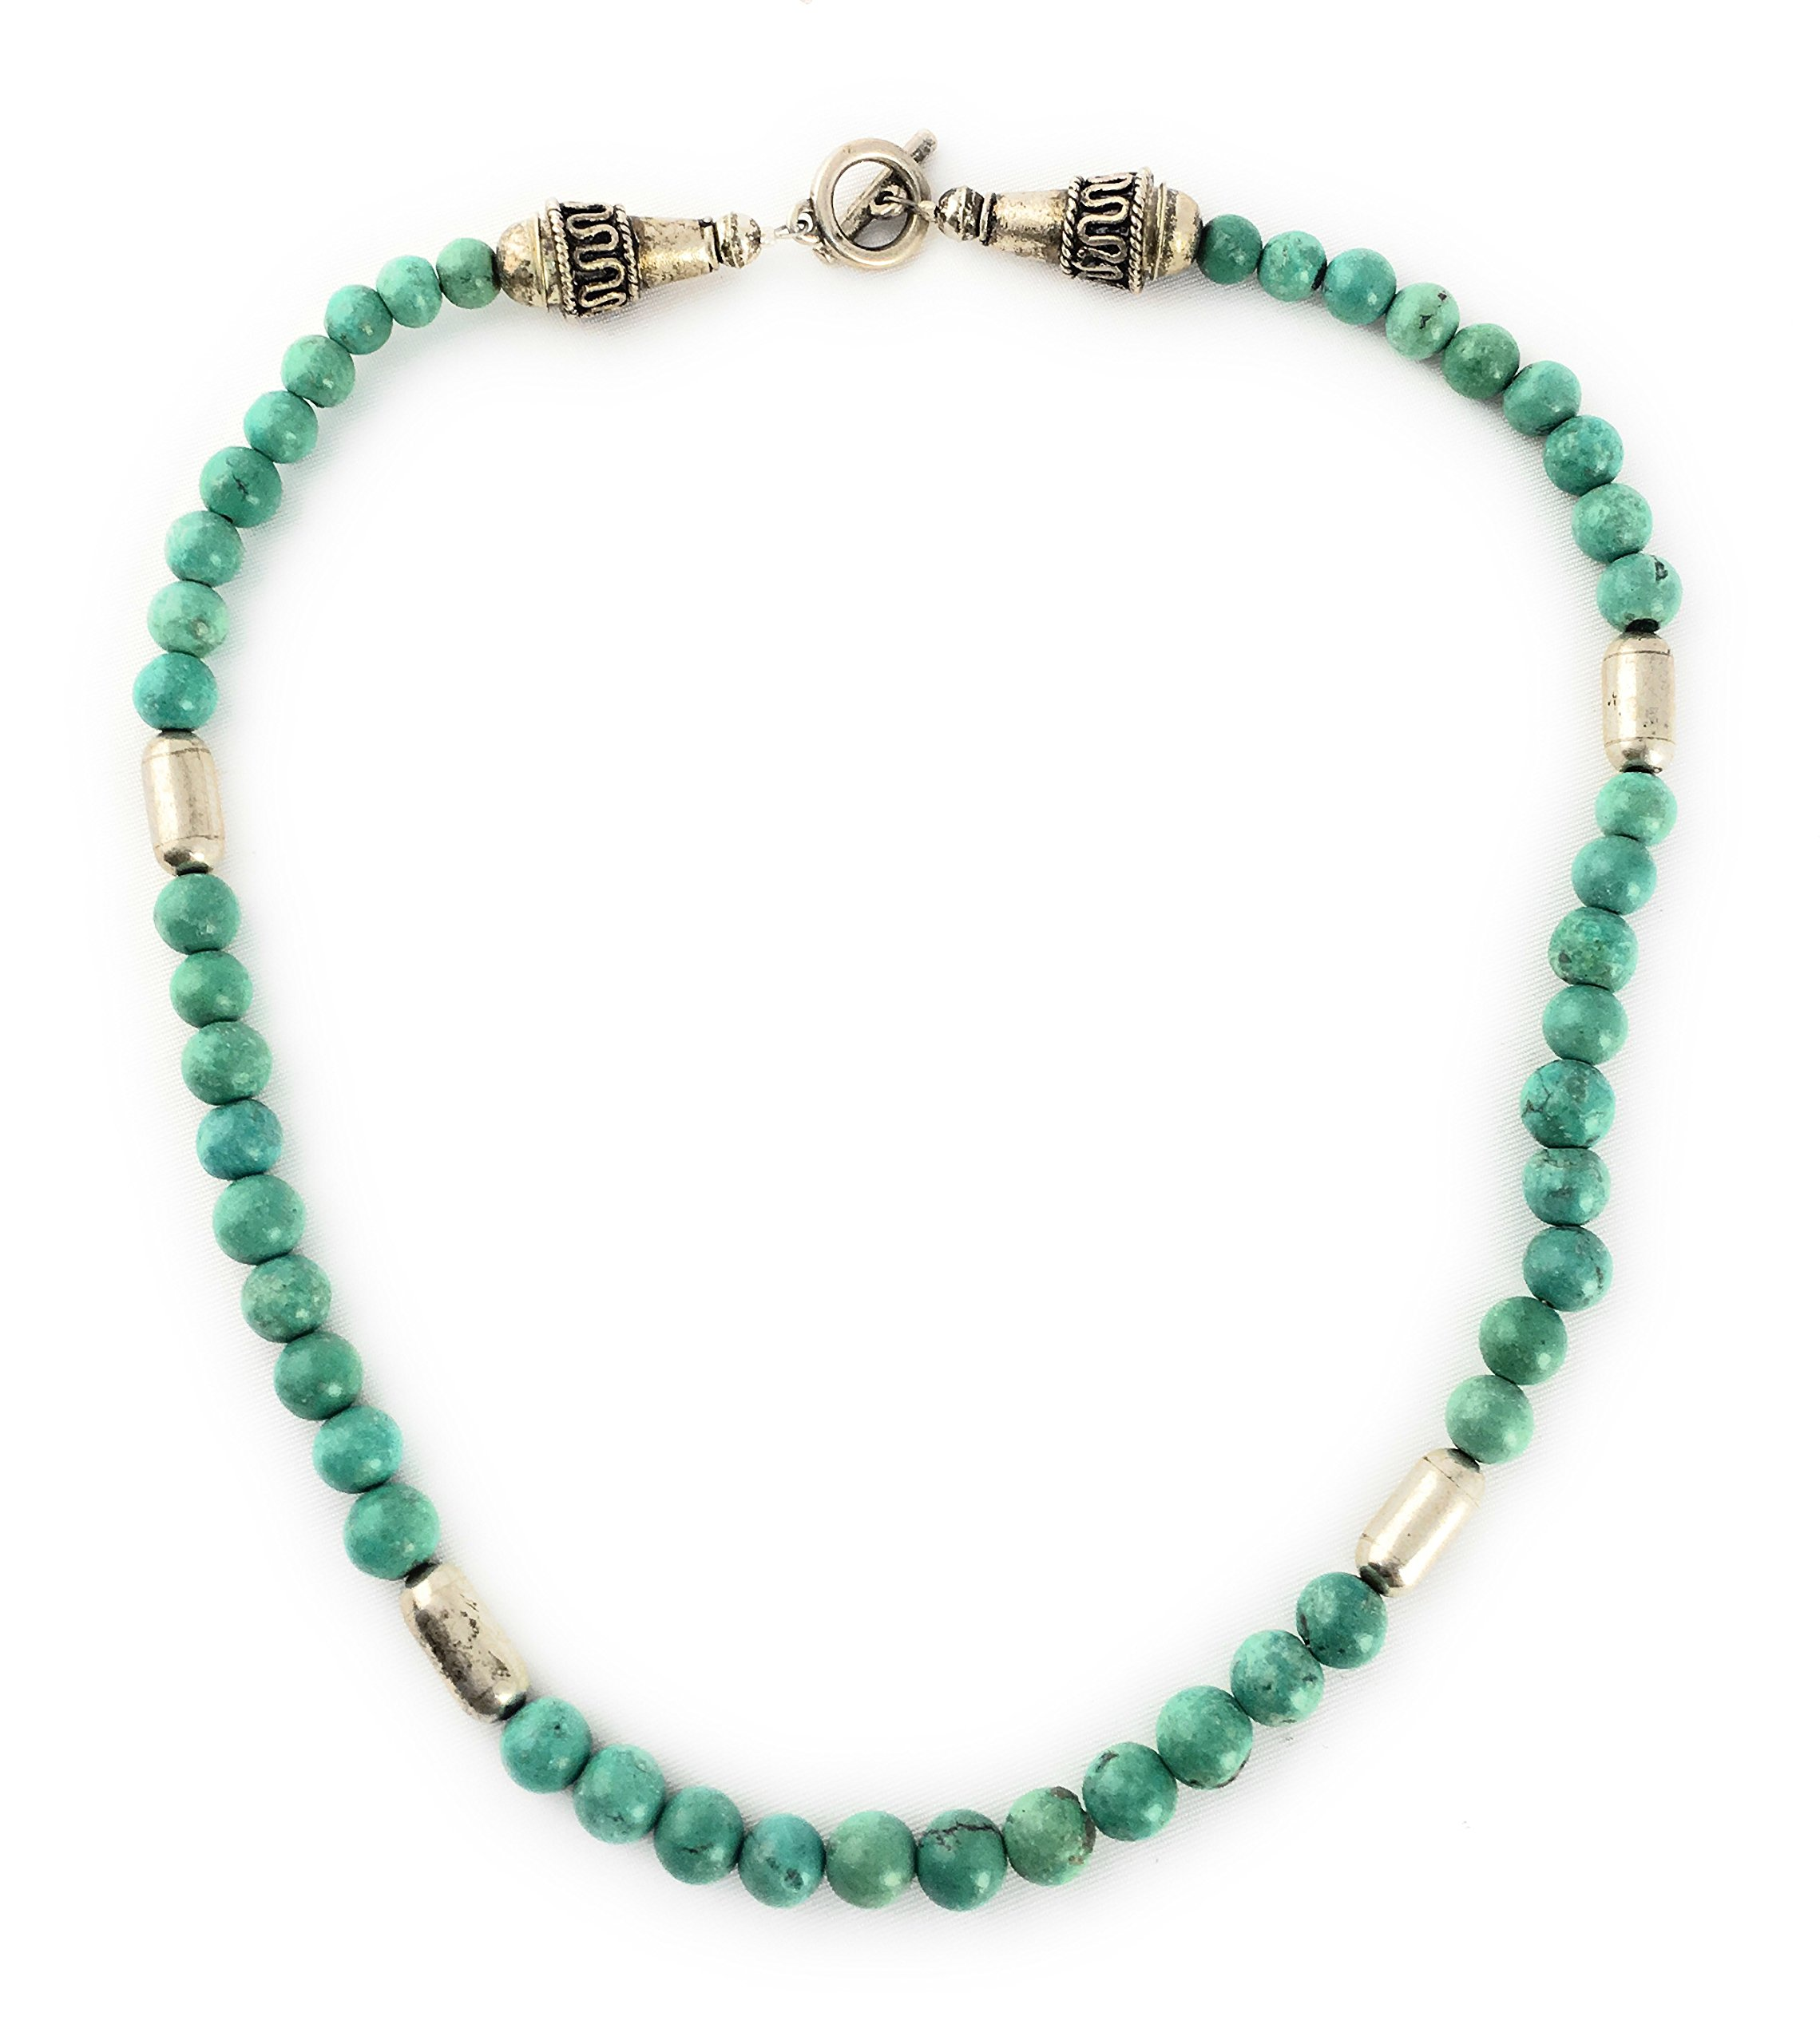 Masha Storewide Sale ! Sterling Silver Necklace By Turquoise, Made in USA - Exclusive Southwestern Handmade Jewelry, Gift by Masha (Image #1)